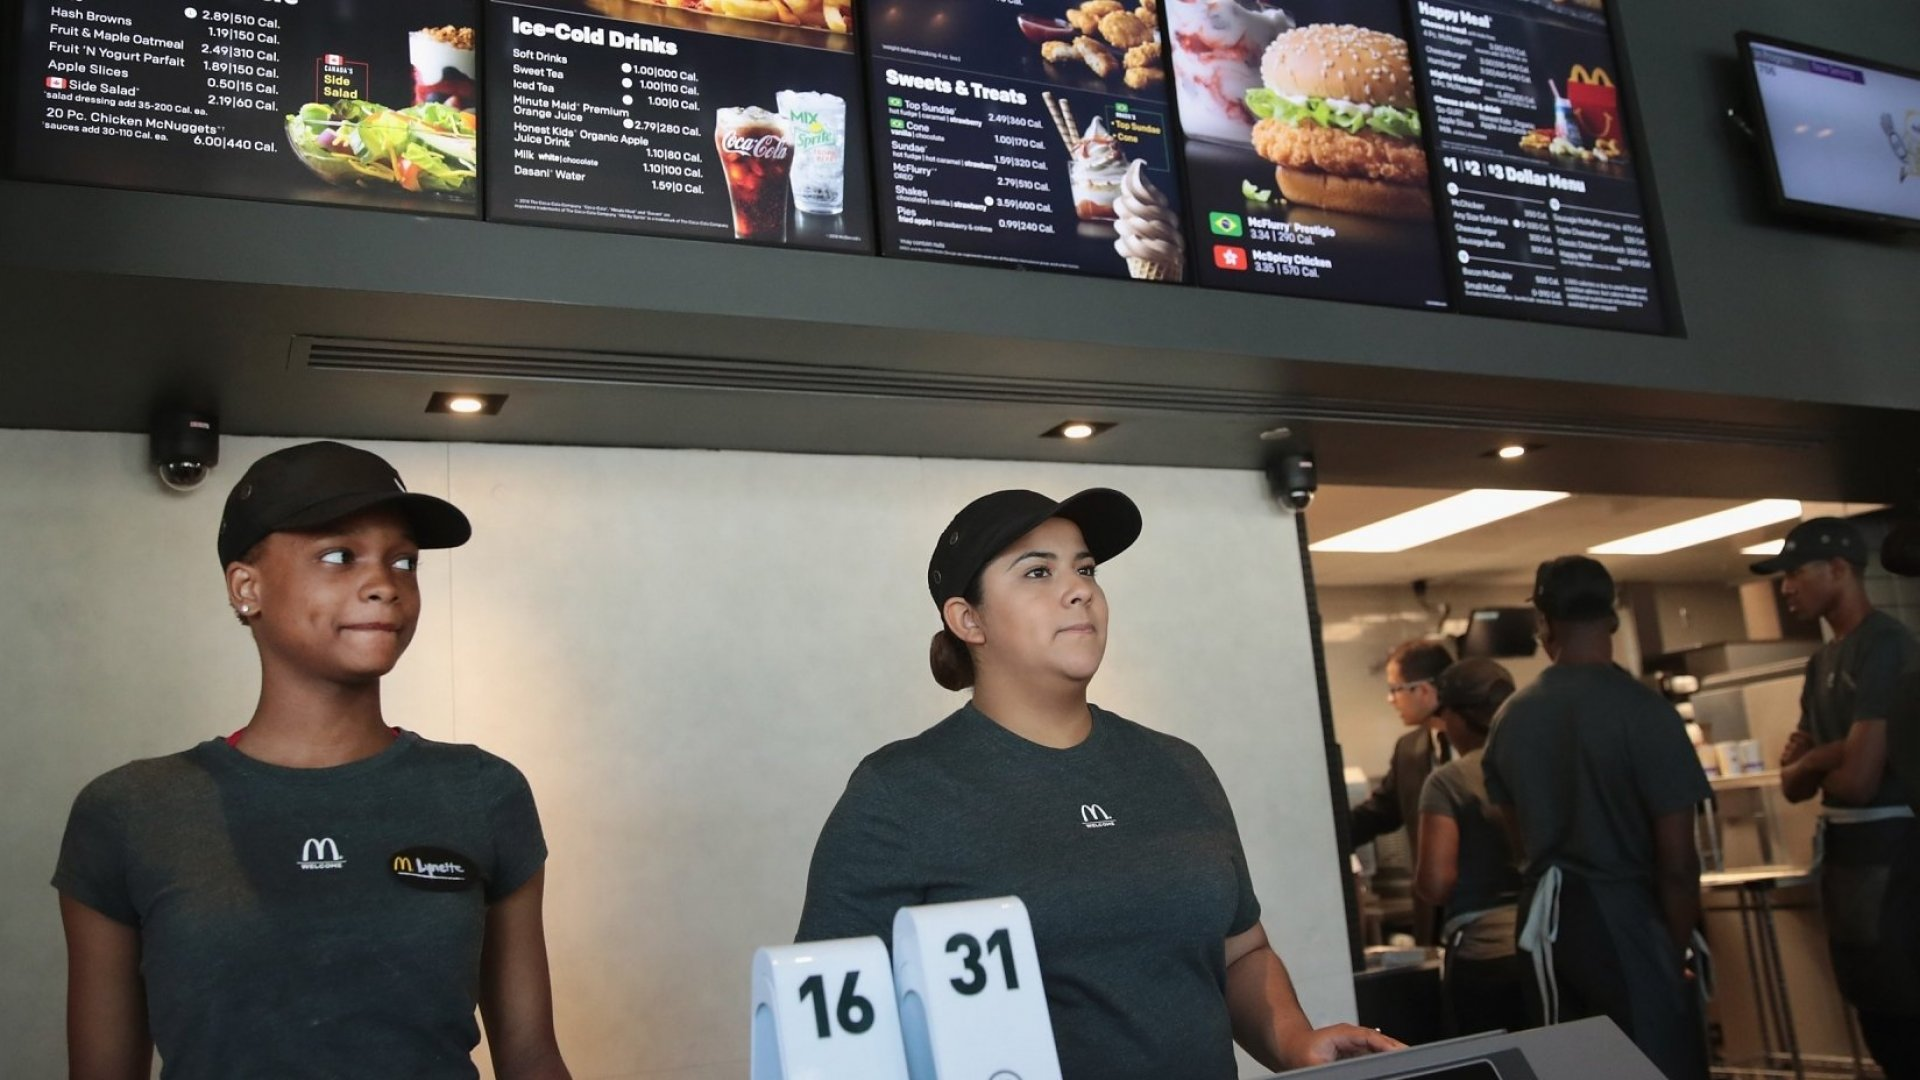 McDonald's Uses This 1 Thing to Ensure That Even Their Teenagers Deliver An Outstanding Service